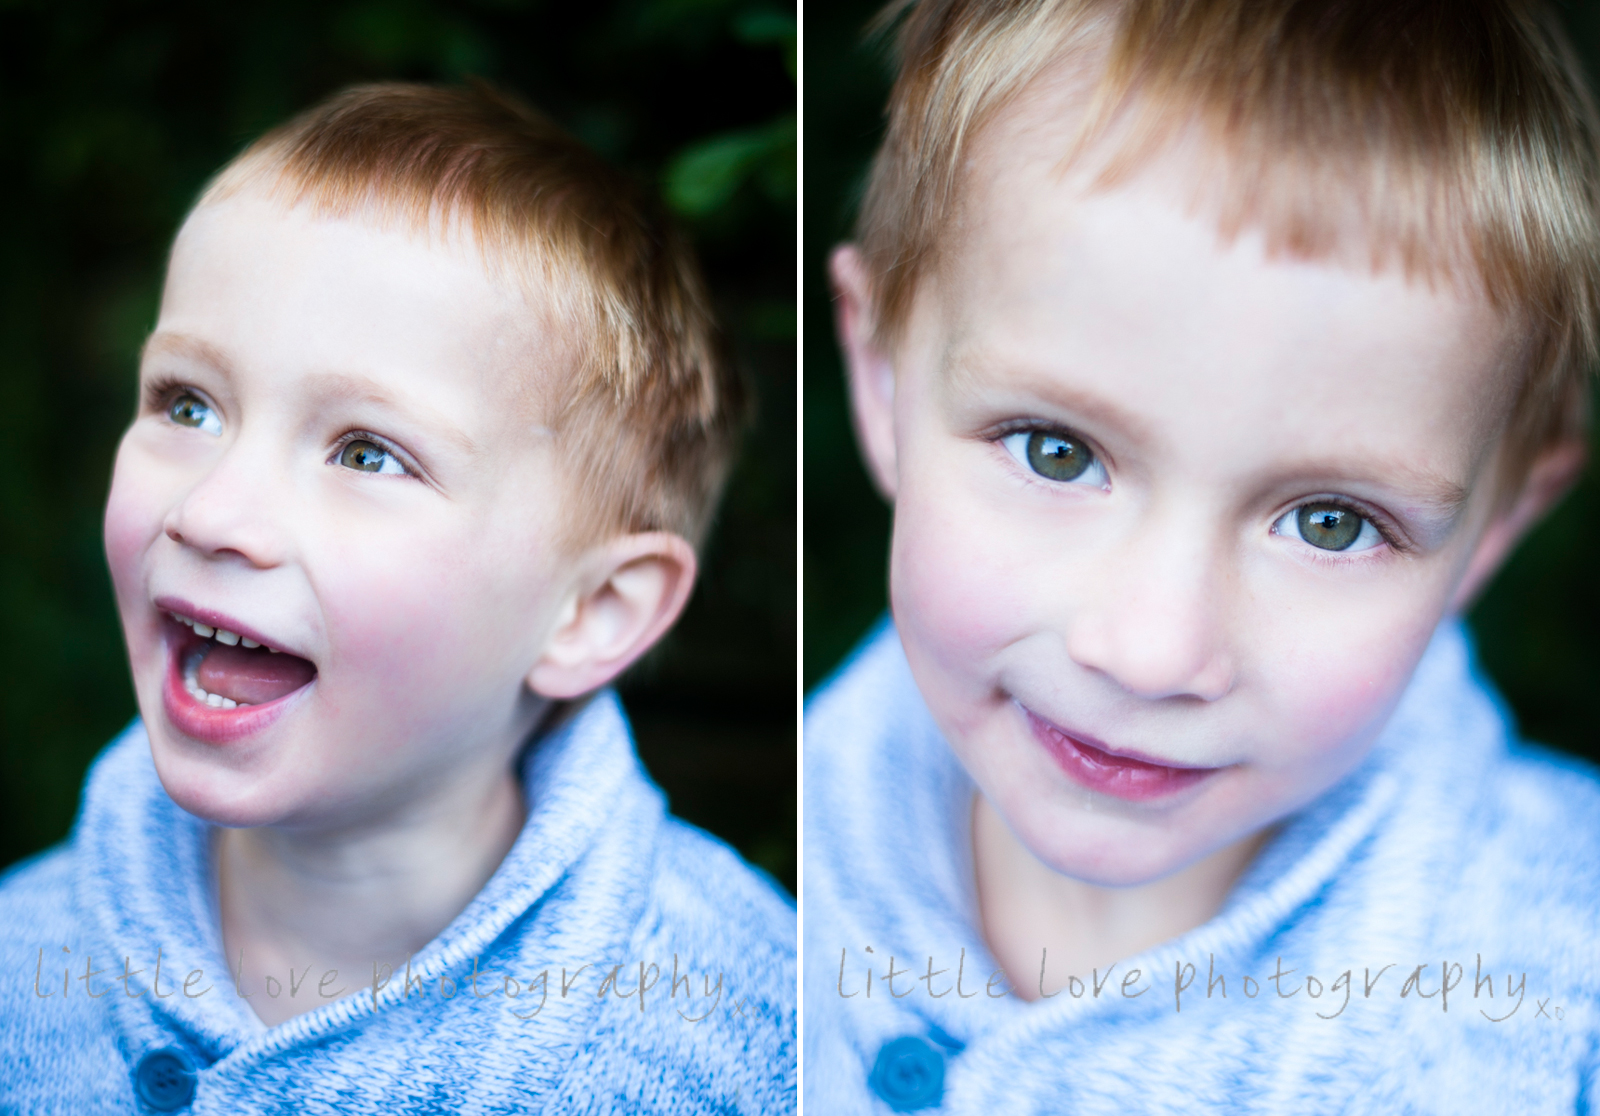 beautiful-photograph-of-boy-in-natural-light-candid-and-unposed-by-little-love-photography